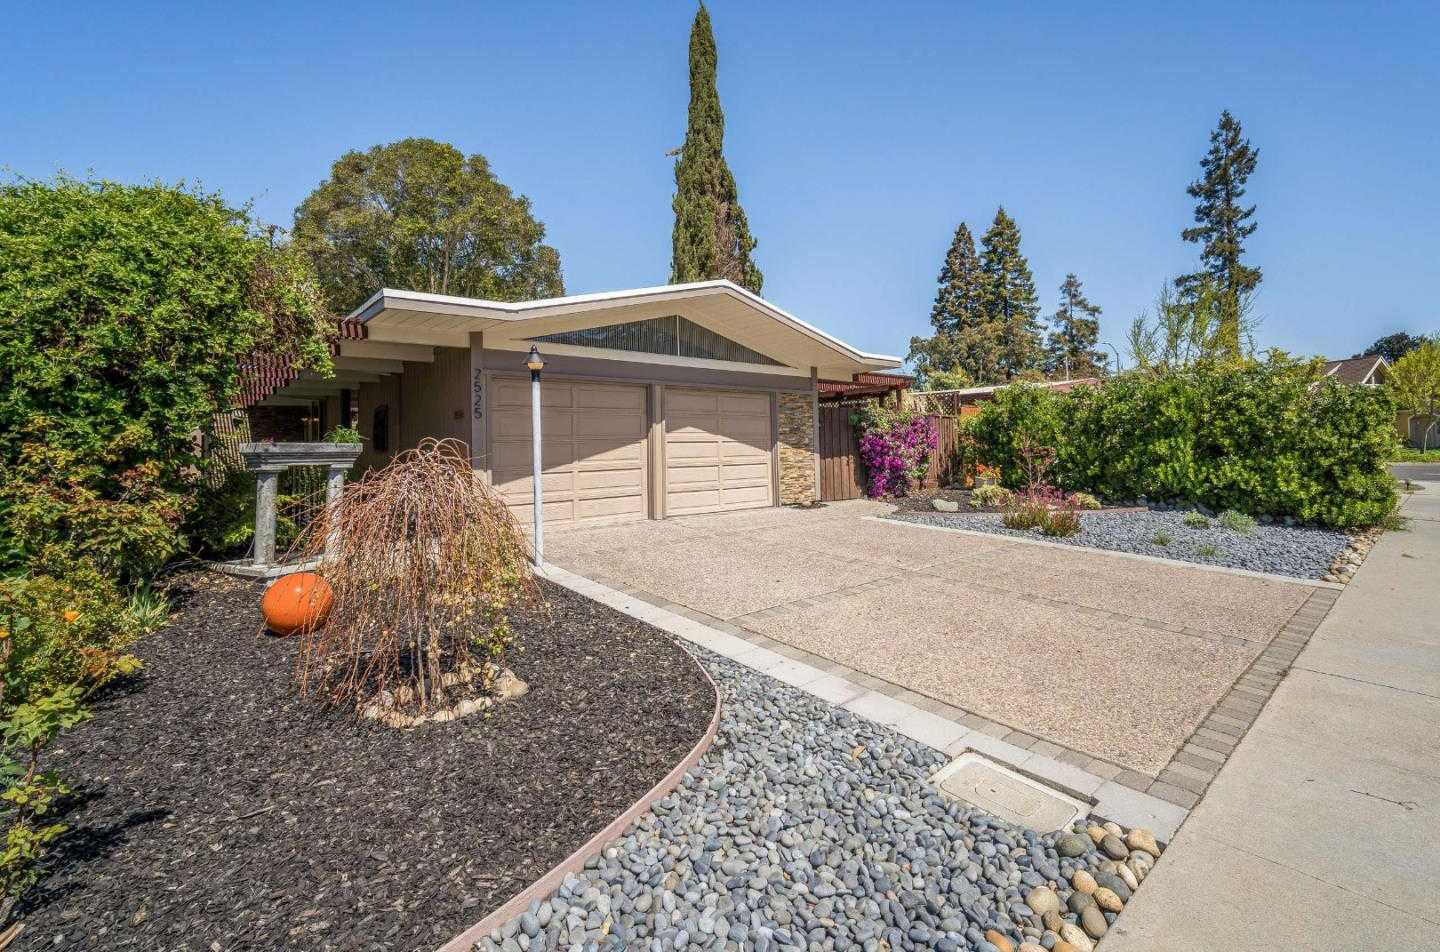 $1,900,000 - 3Br/2Ba -  for Sale in Mountain View